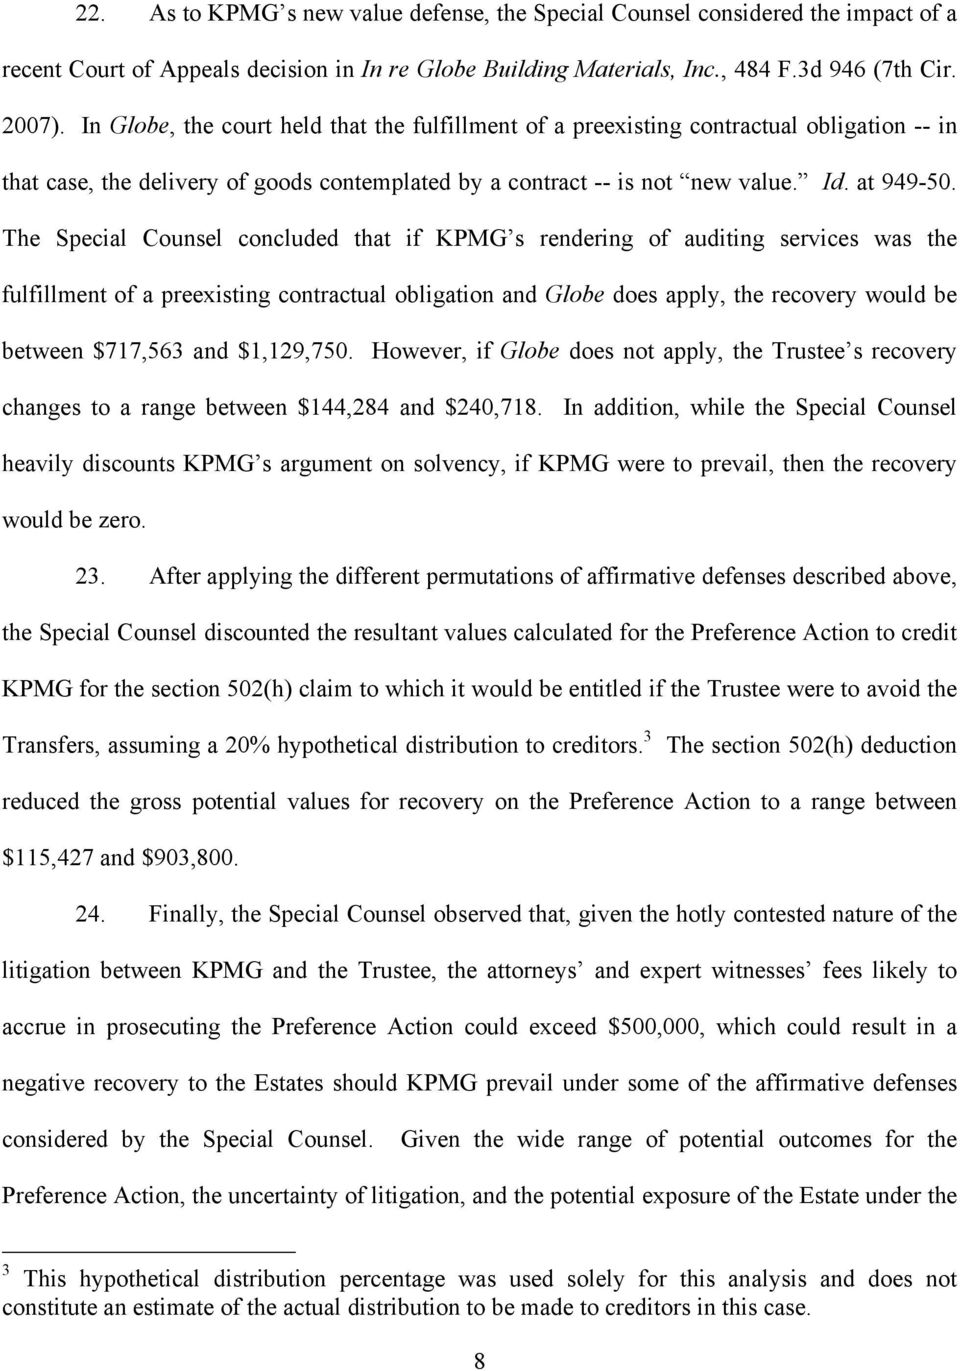 The Special Counsel concluded that if KPMG s rendering of auditing services was the fulfillment of a preexisting contractual obligation and Globe does apply, the recovery would be between $717,563